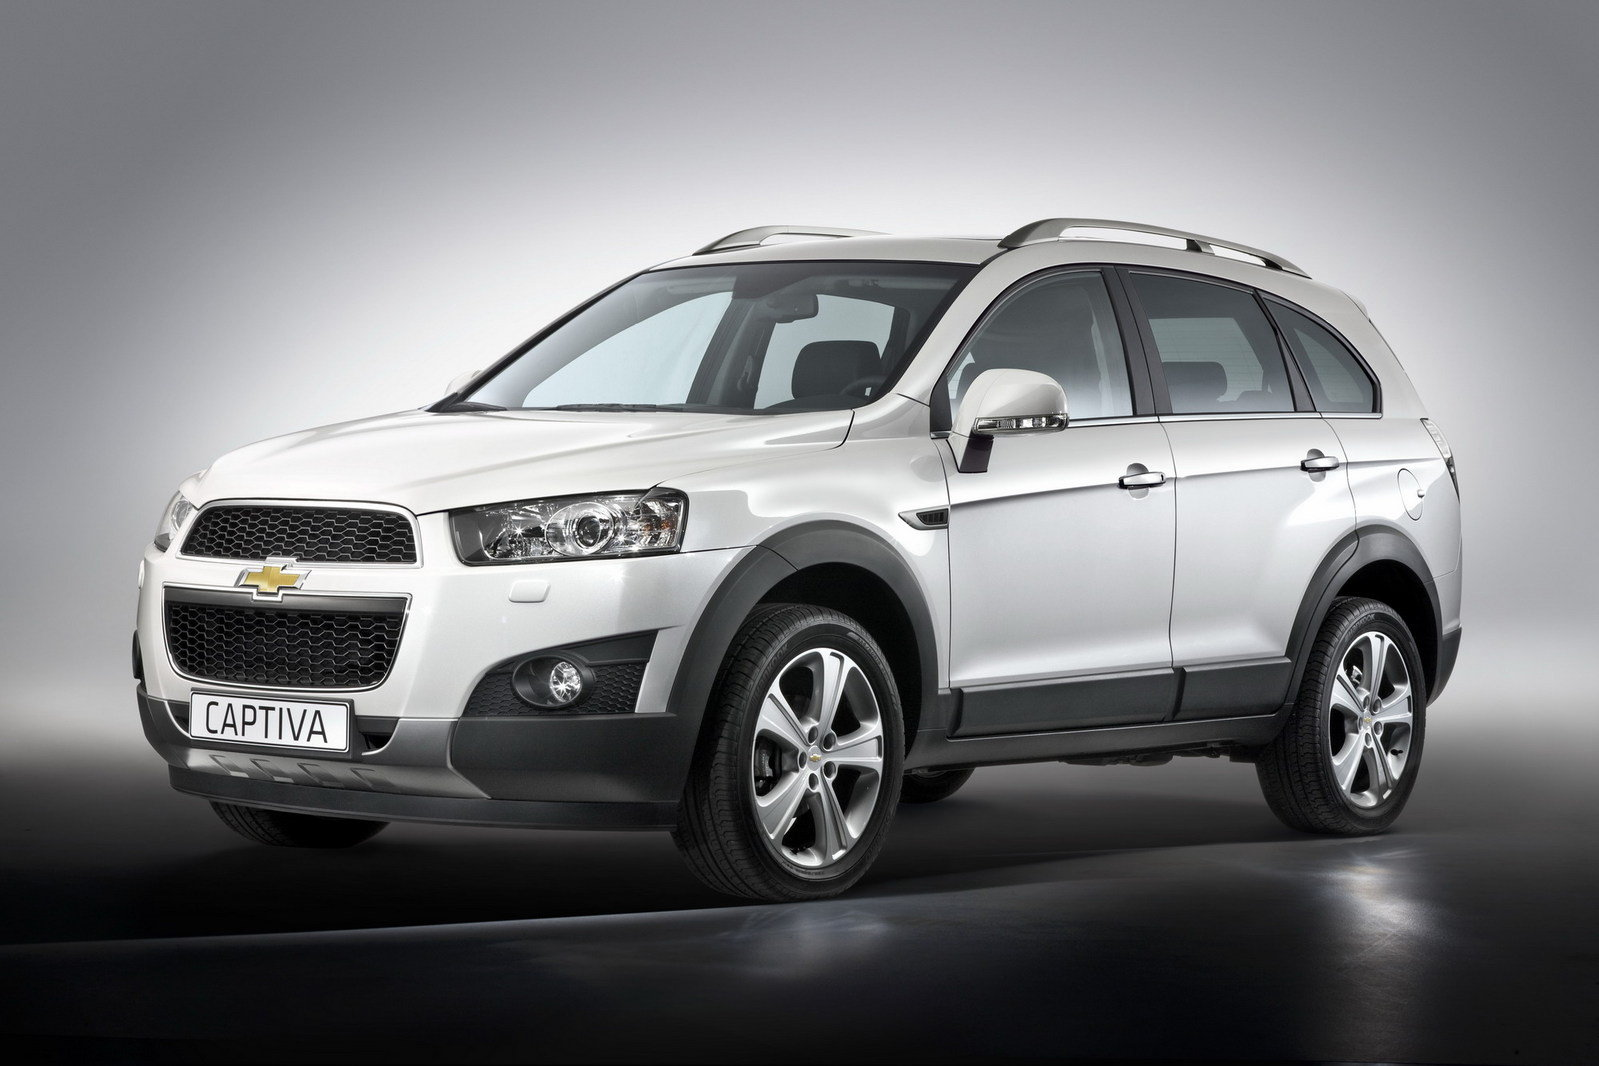 All Chevy 2008 chevrolet captiva review : Chevrolet Captiva Reviews, Specs & Prices - Top Speed